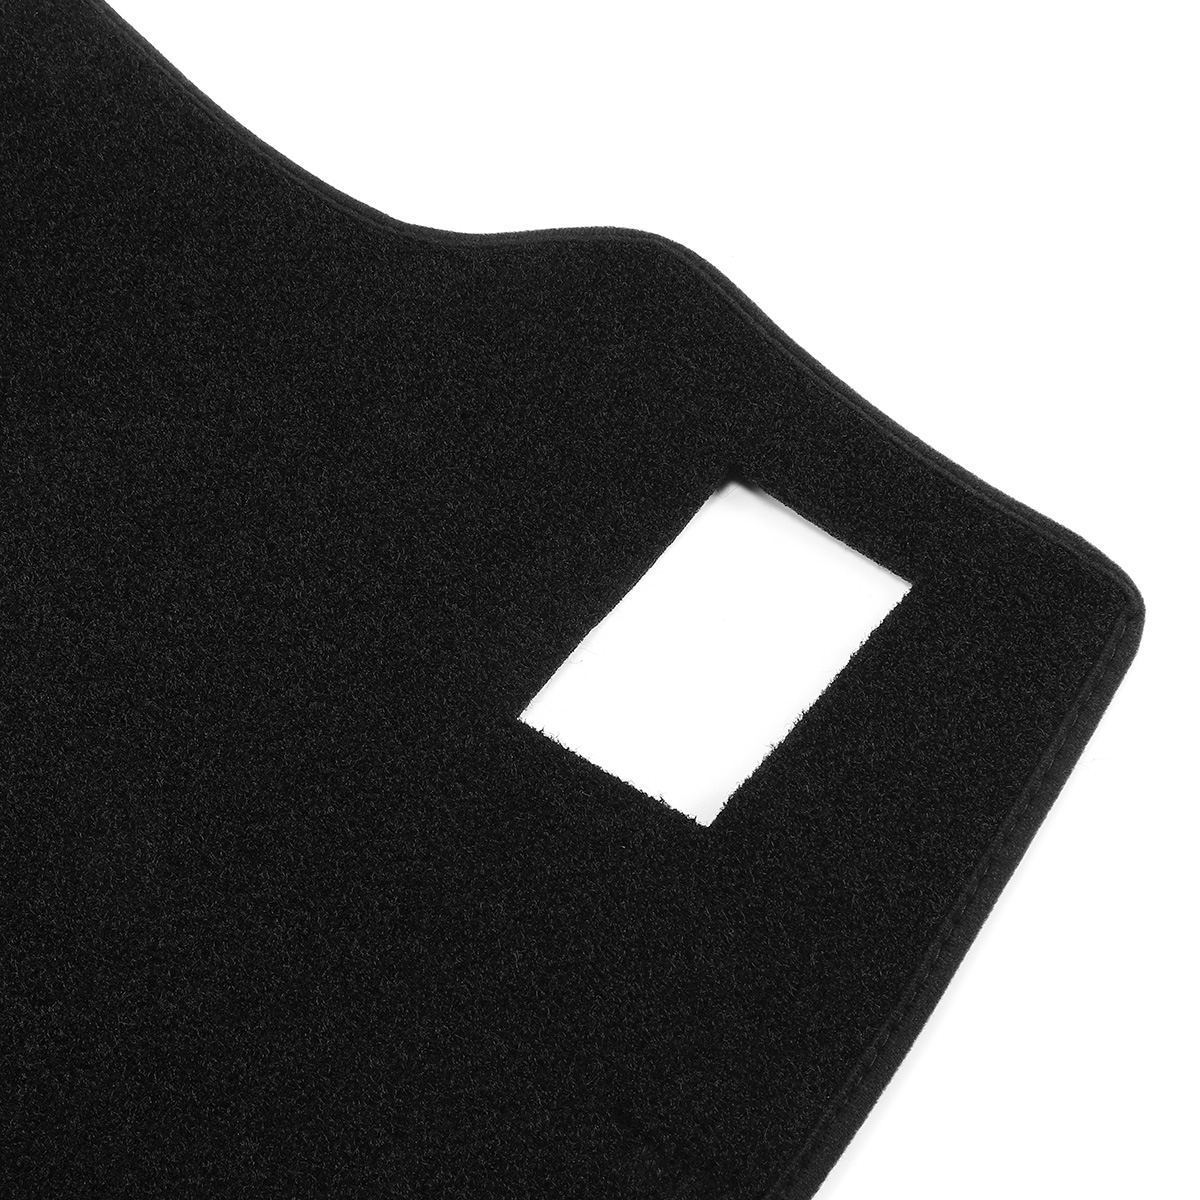 Polyester Non-Slip Car Dash Mat Dashboard Cover Pad for Toyota Corolla Hatch ZRE 182 2013-2017